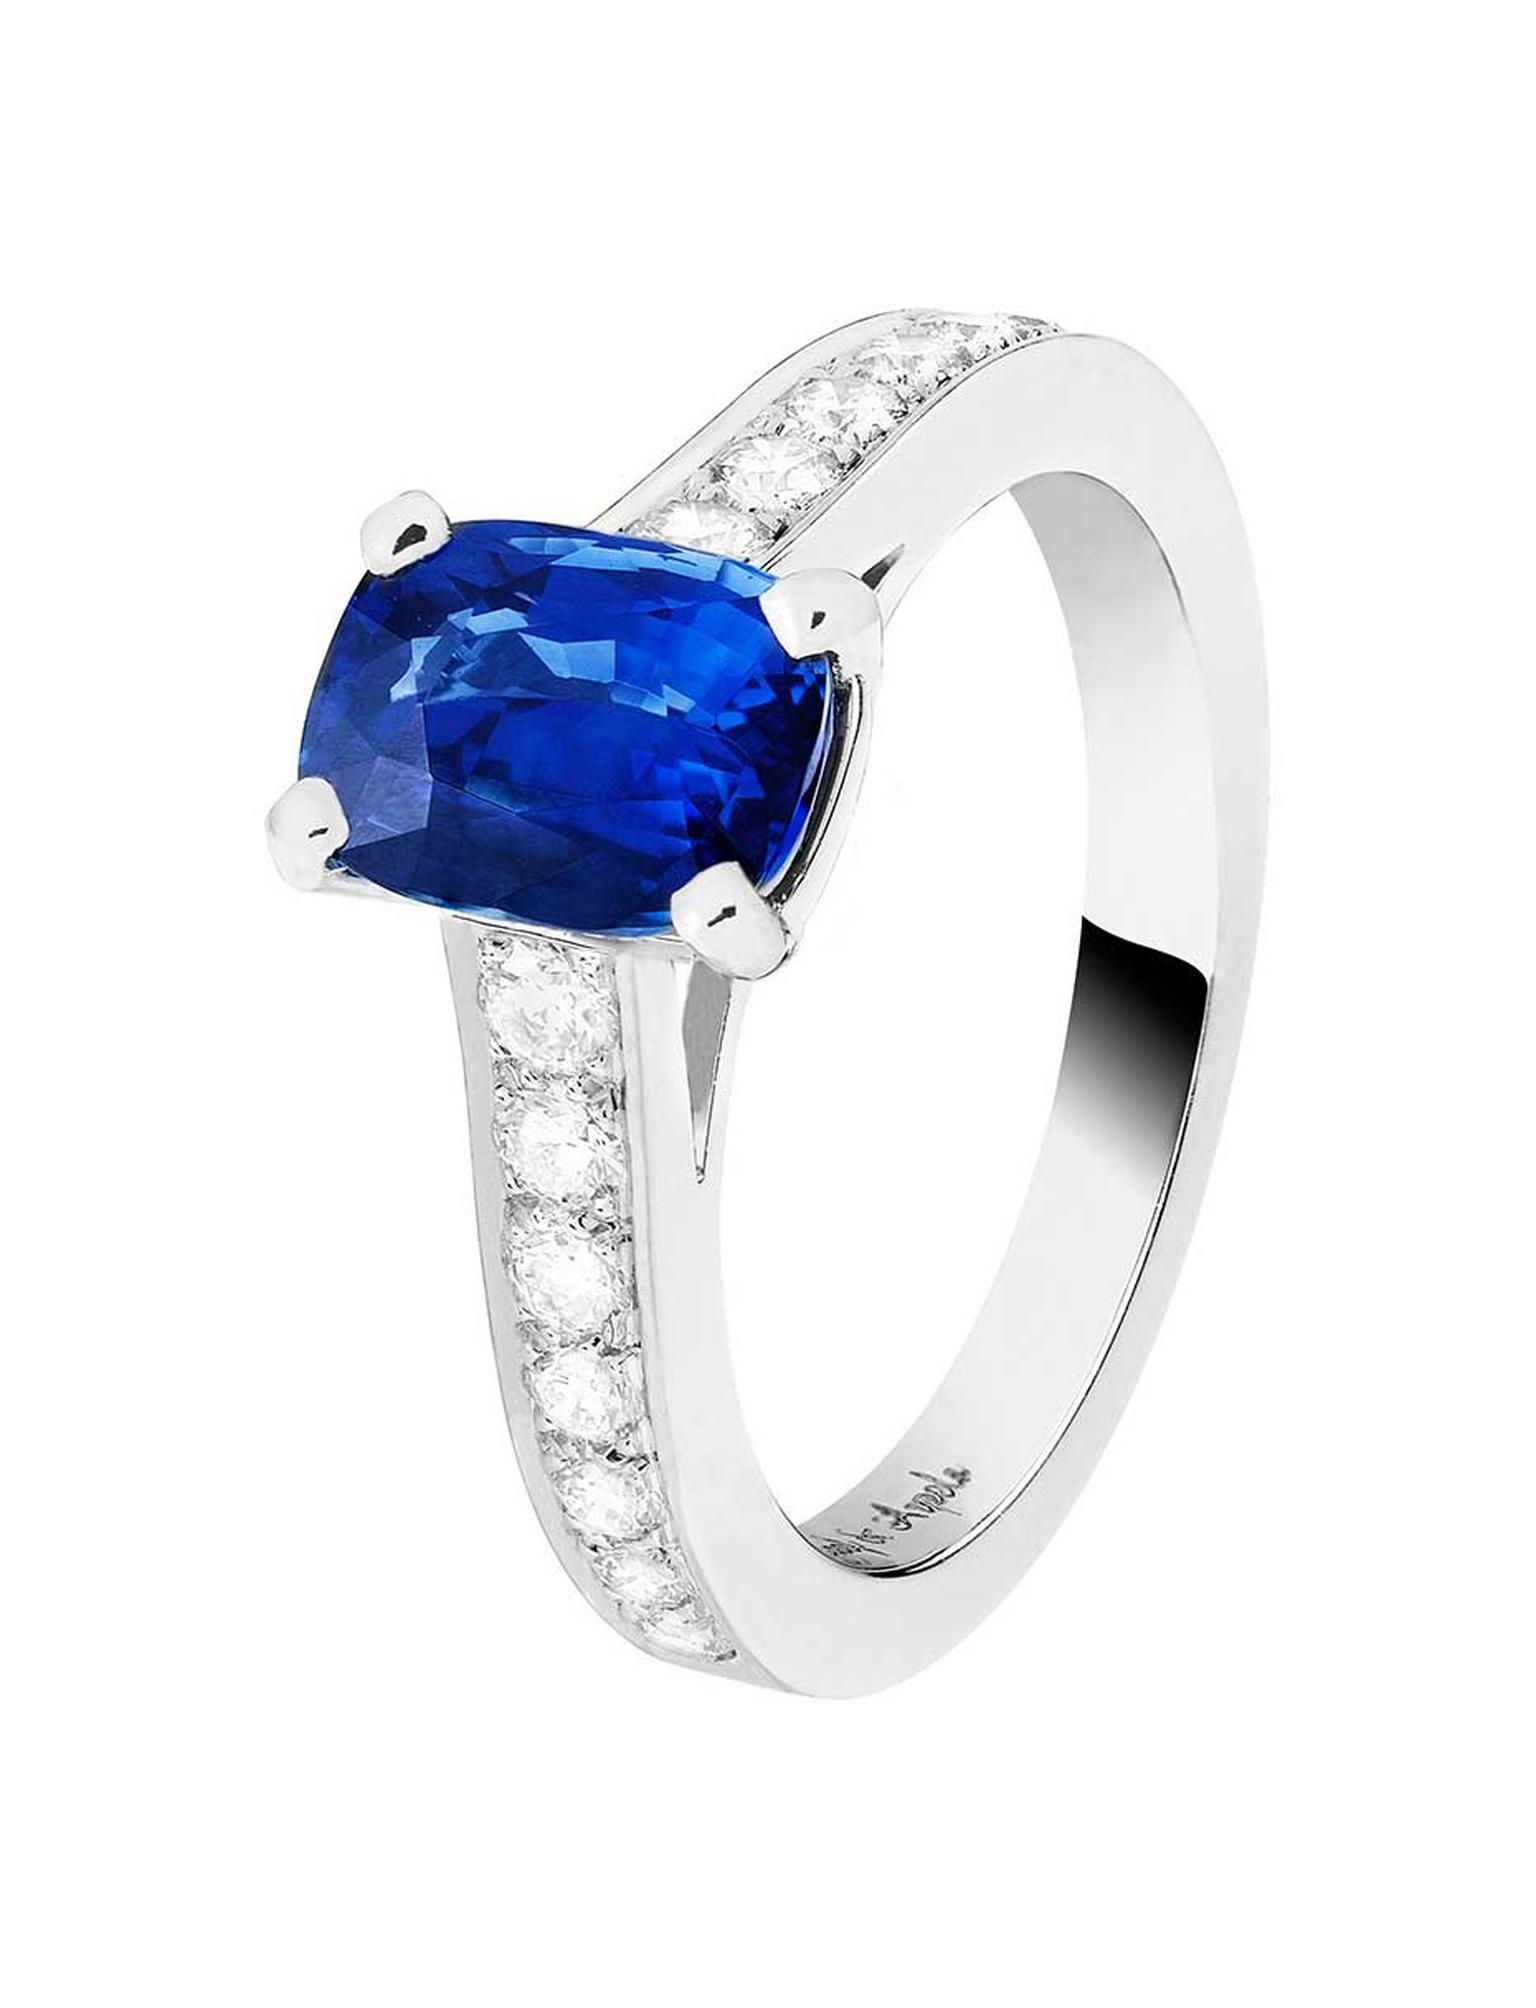 Worn by Kirsten Dunst to the 2014 Met Ball, the Van Cleef & Arpels Pushkar platinum ring featuring a 2.60ct sapphire and diamonds